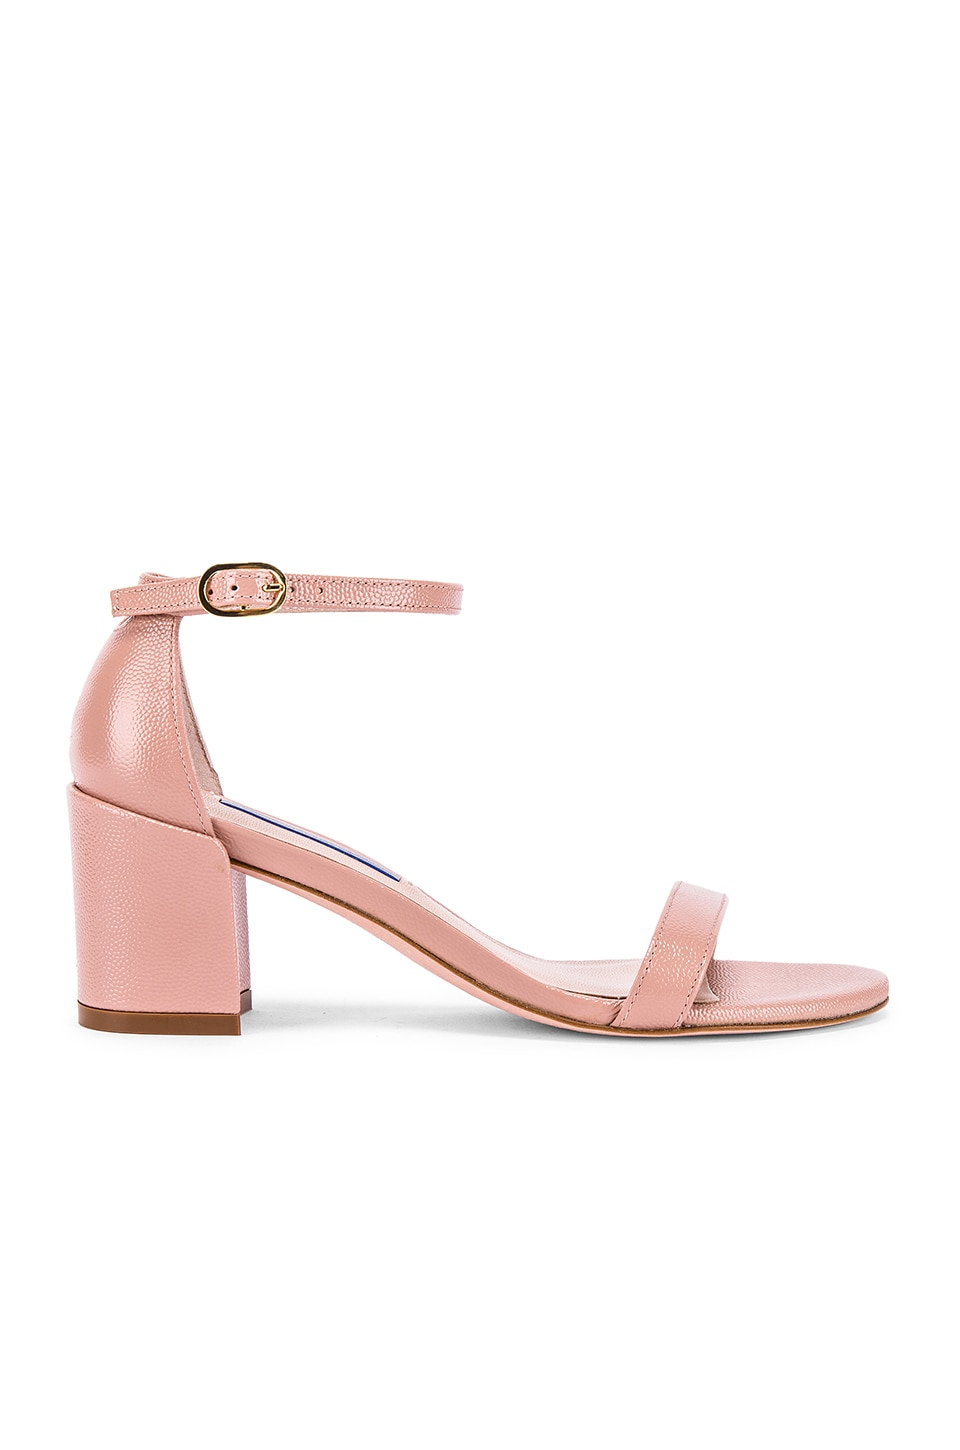 Stuart Weitzman Simple Sandal in Buff Blush